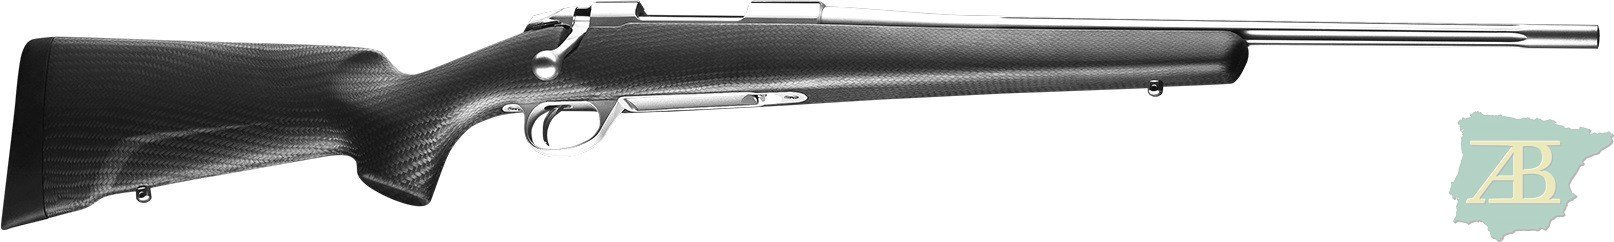 RIFLE DE CERROJO DE CAZA SAKO 85 CARBONLIGHT